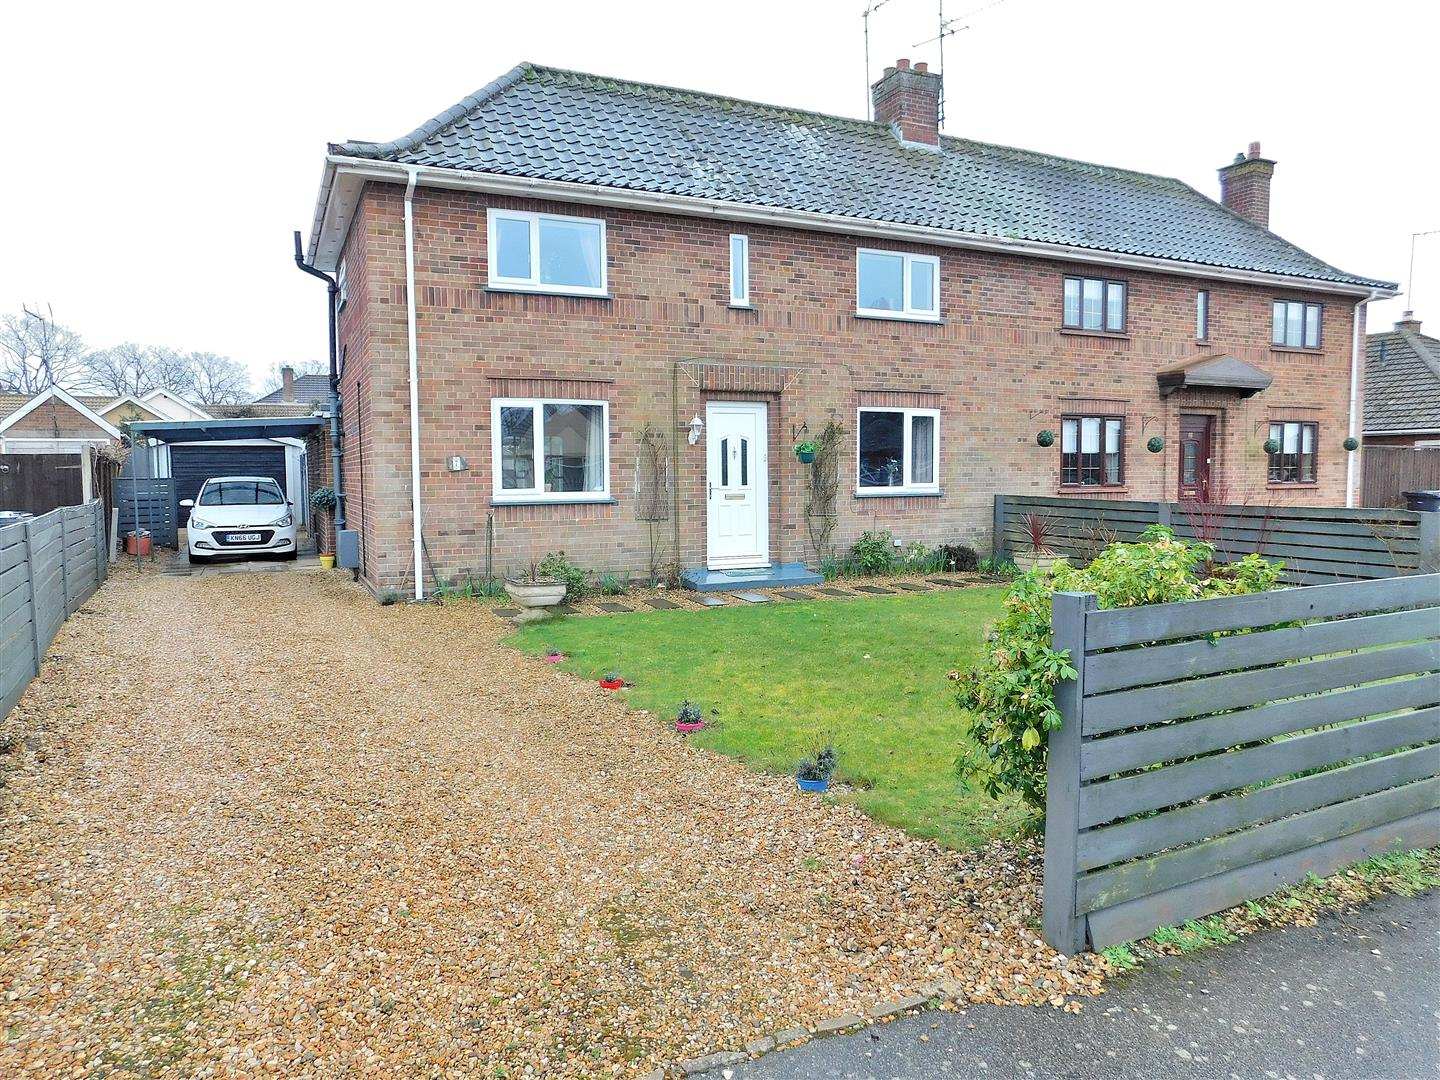 3 bed semi-detached house for sale in Arundel Drive, King's Lynn  - Property Image 1